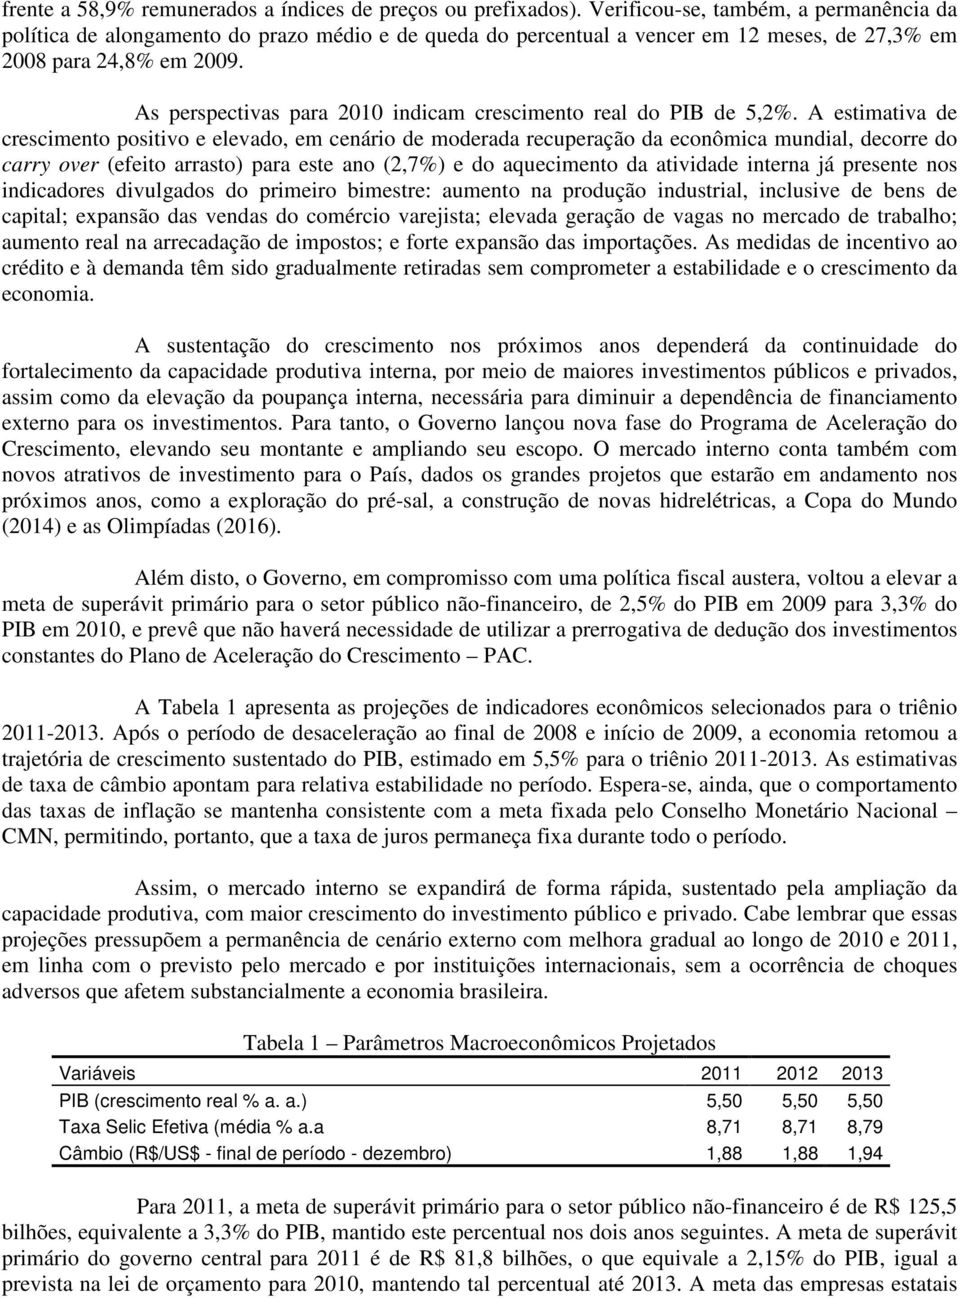 As perspectivas para 2010 indicam crescimento real do PIB de 5,2%.